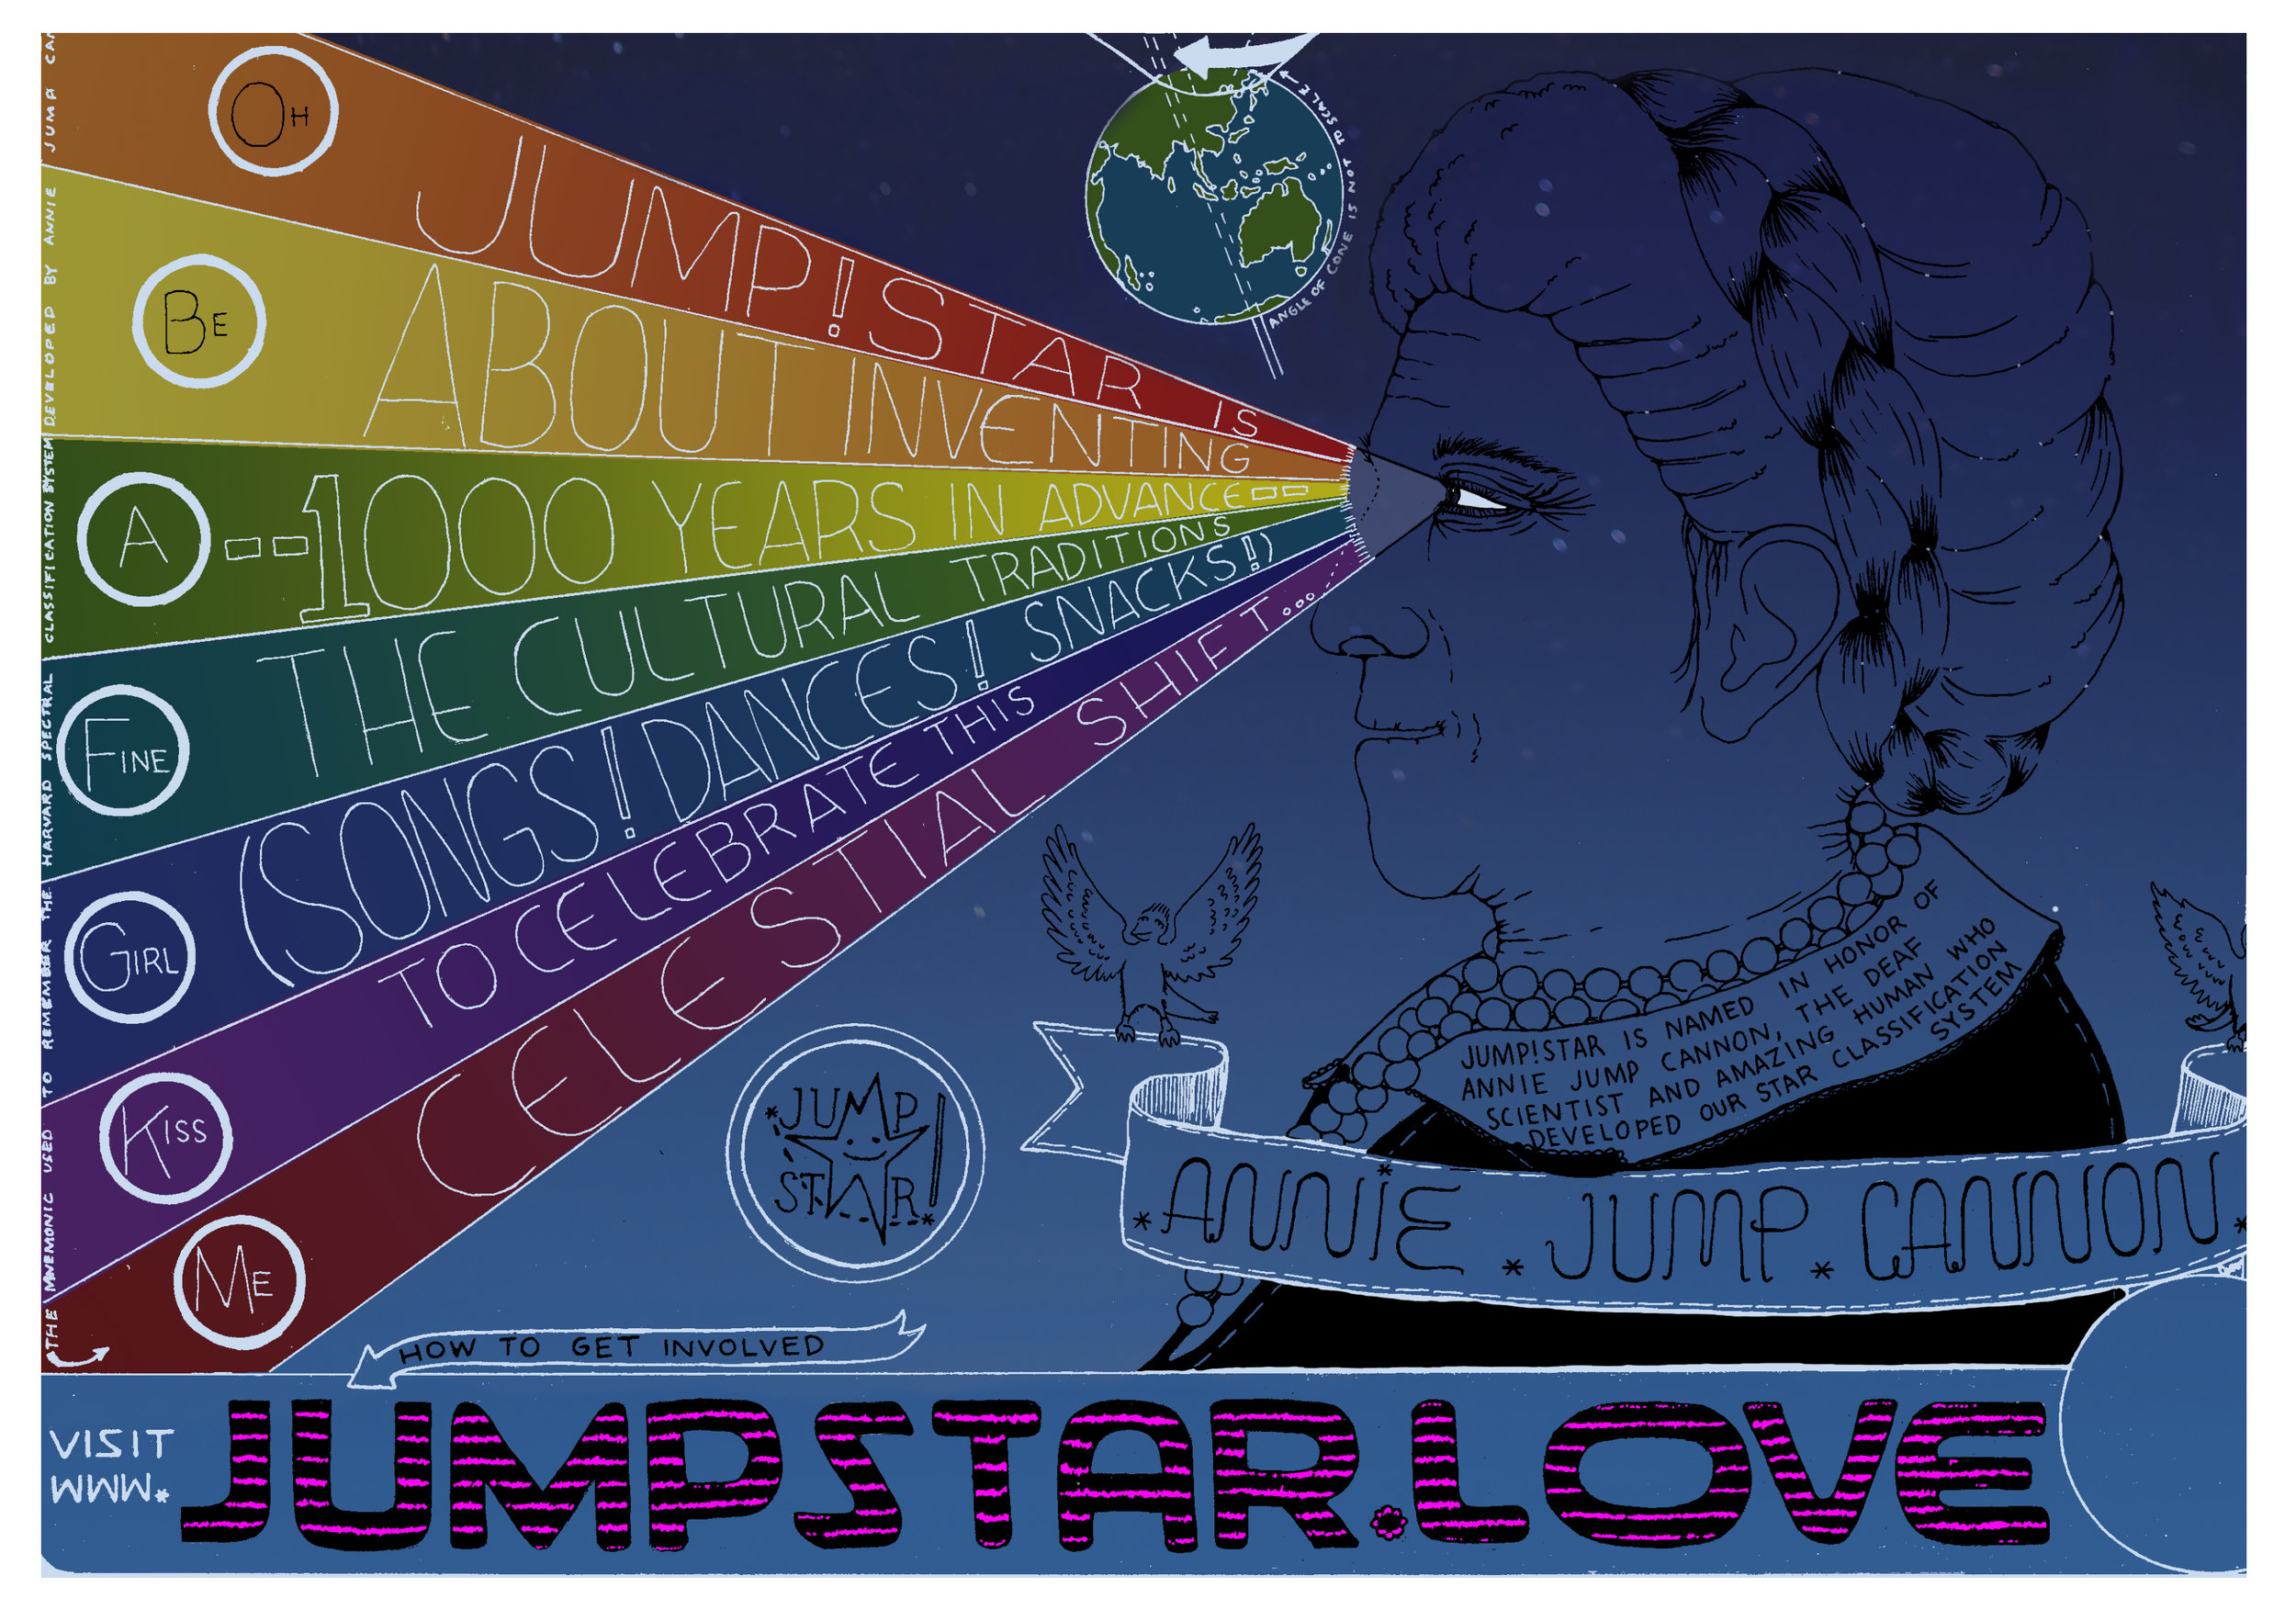 jumpstar intro poster (cropped banner).jpg